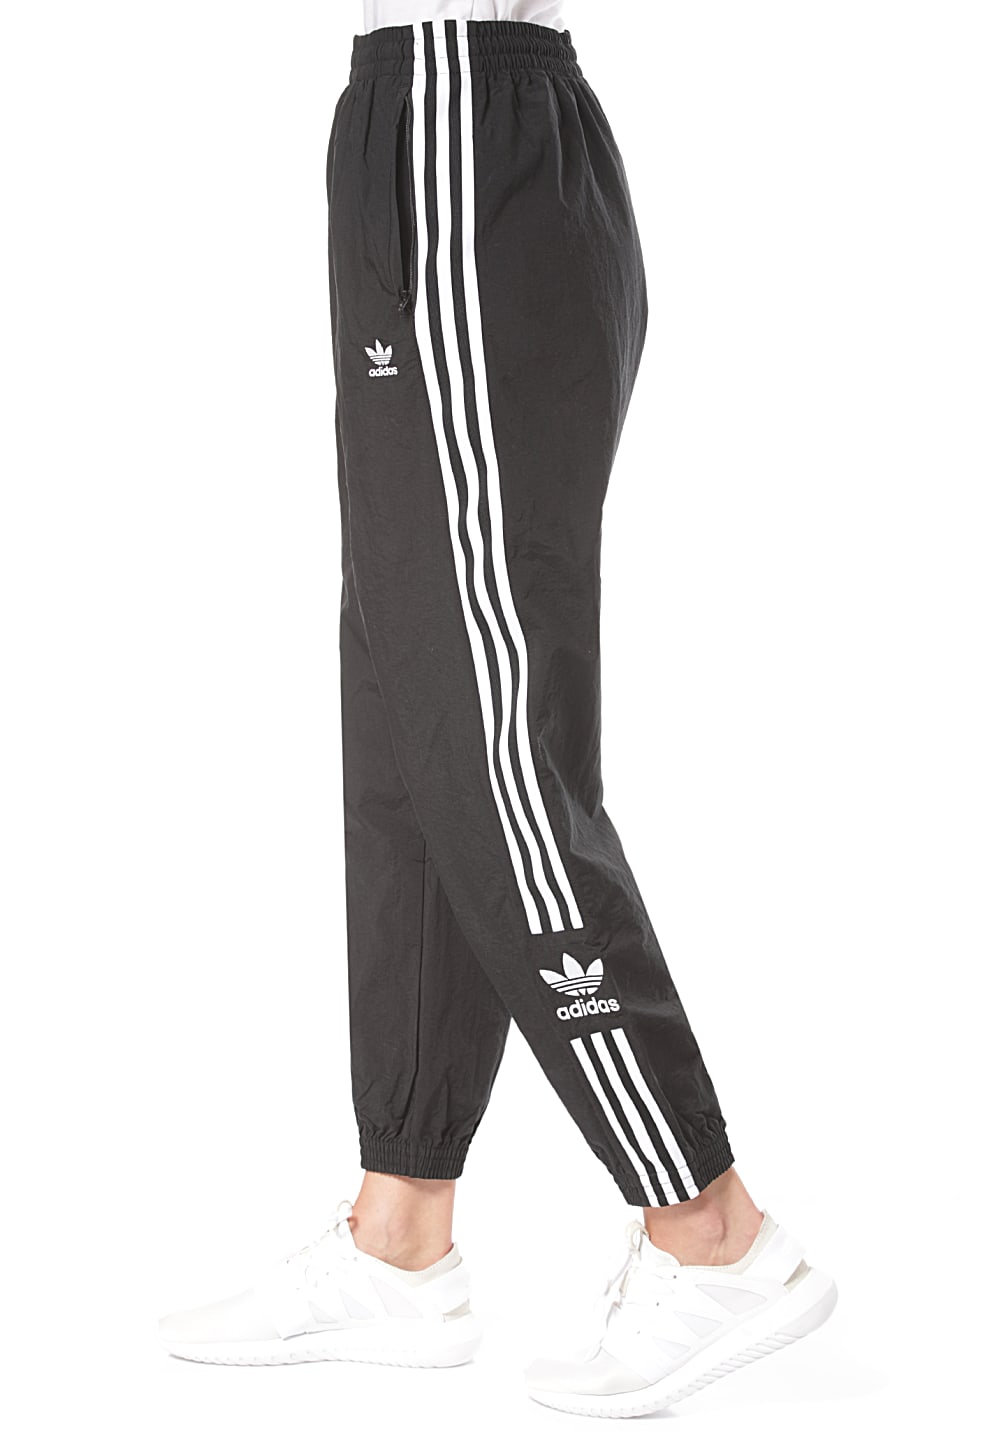 ADIDAS ORIGINALS Lock Up Trackpants for Women Black